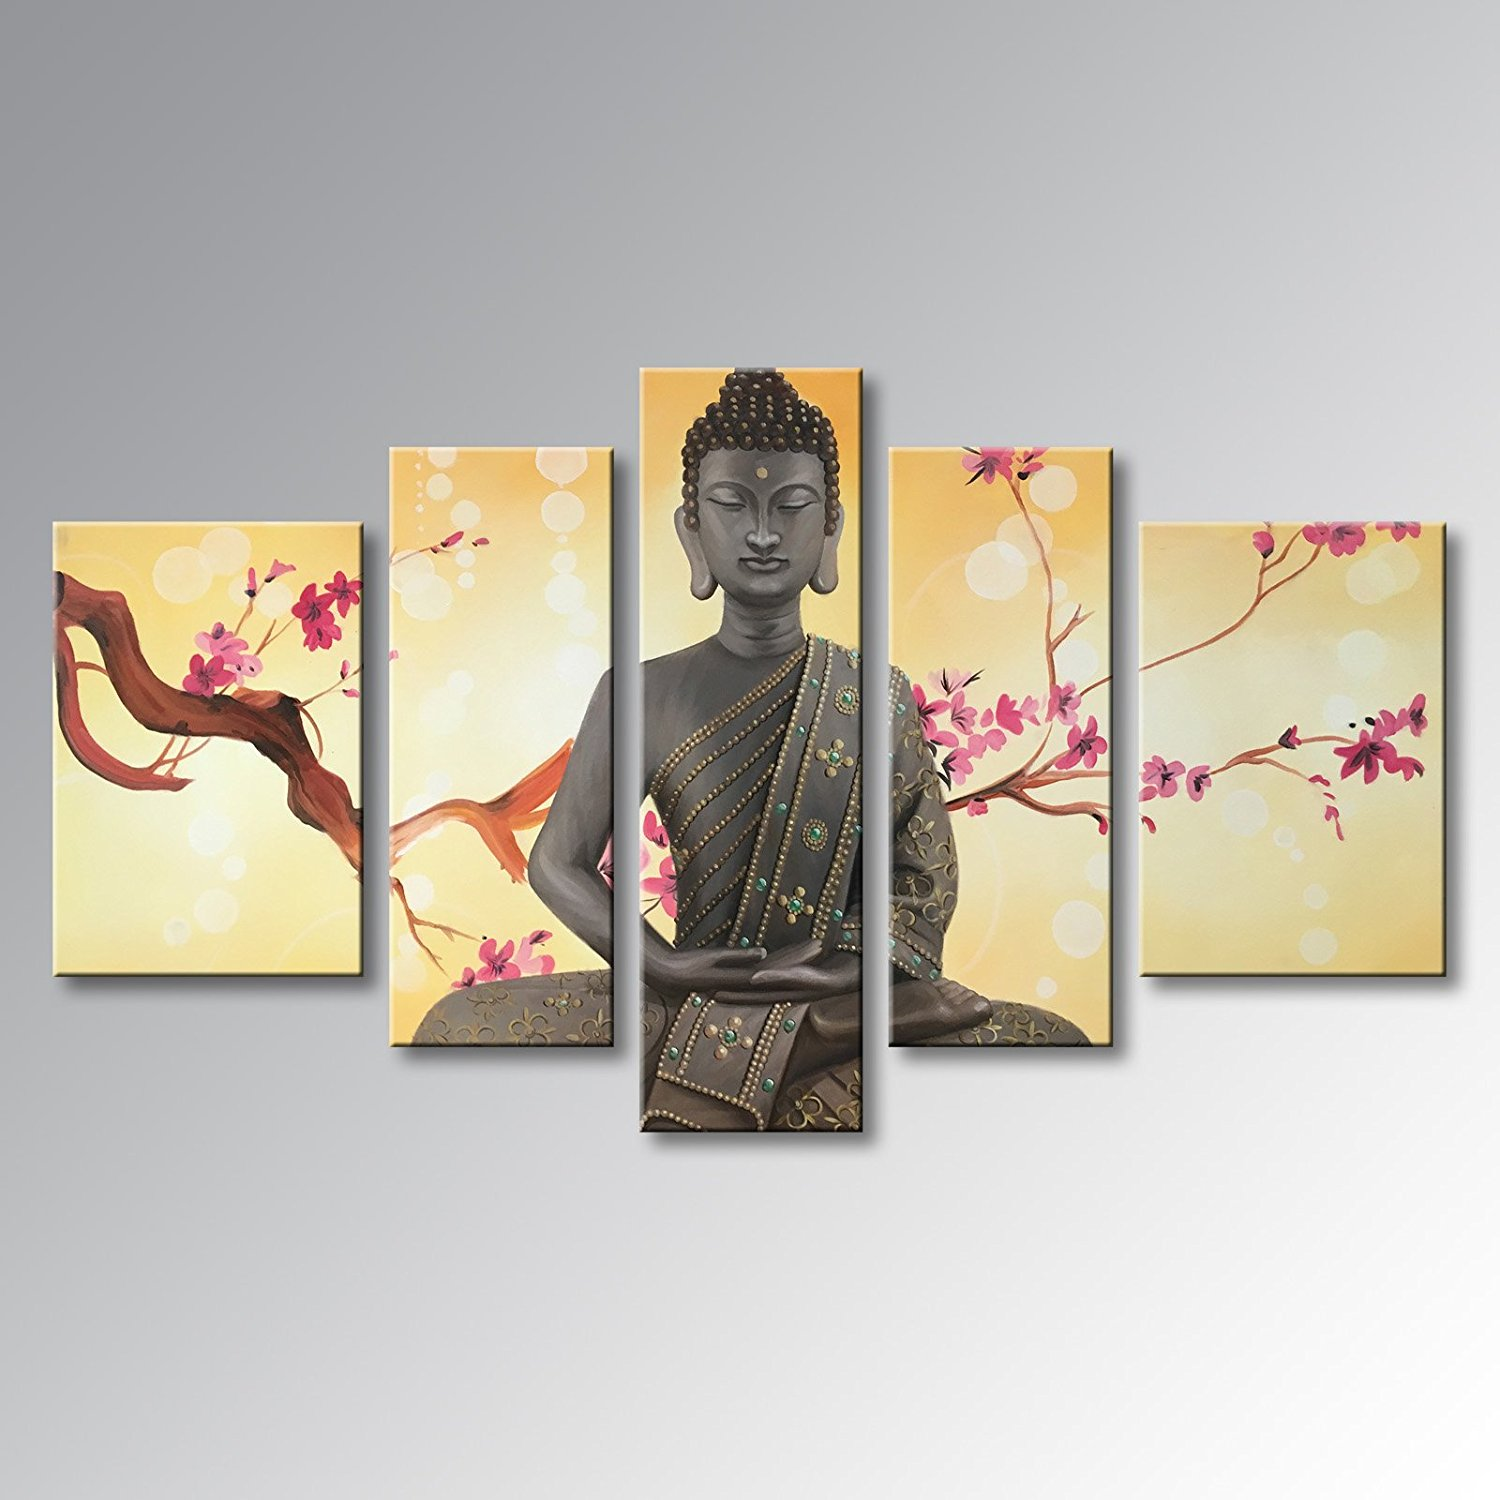 """Winpeak Pure Handmade Framed Canvas Art Buddha Oil Paintings on Canvas 5 paenl Wall Decor Contemporary Artwork Stretched Ready to Hang (58""""W x 32""""H (14""""x24"""" x2, 10""""x28"""" x2, 10""""x32"""" x1))"""